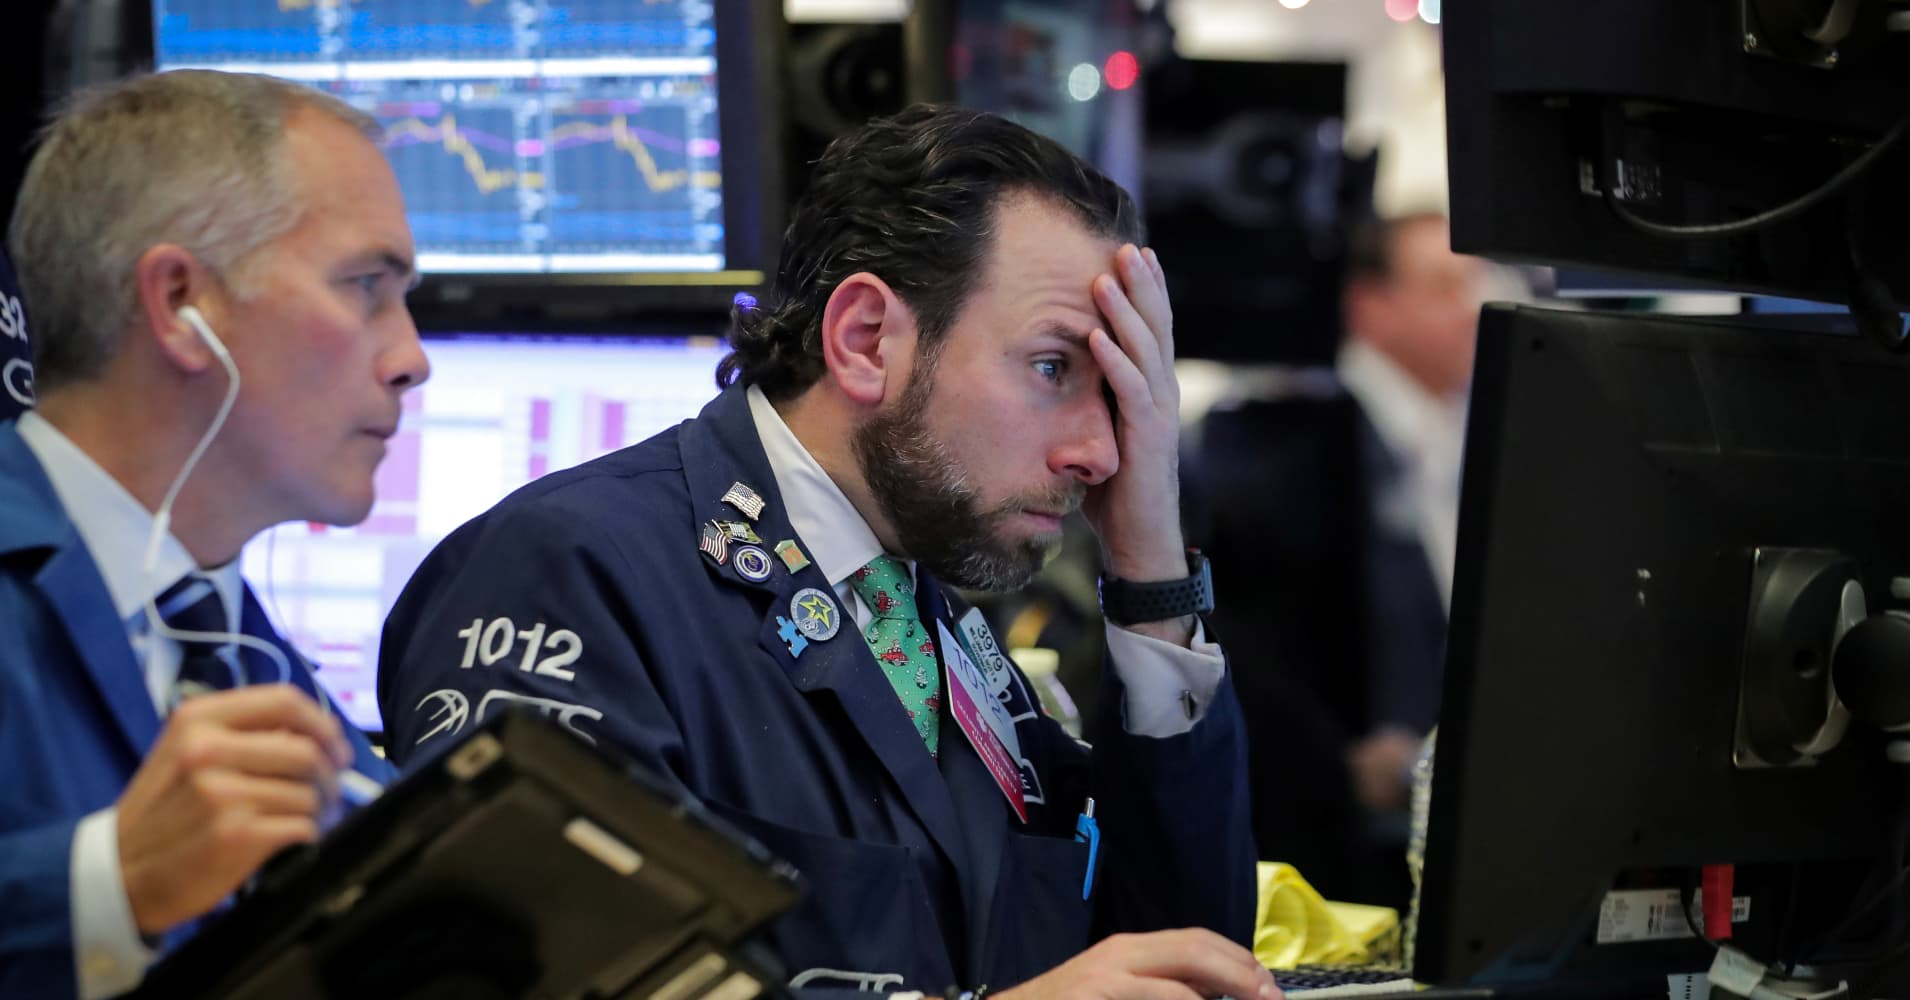 A trader works at his post on the floor of the New York Stock Exchange (NYSE) in New York.